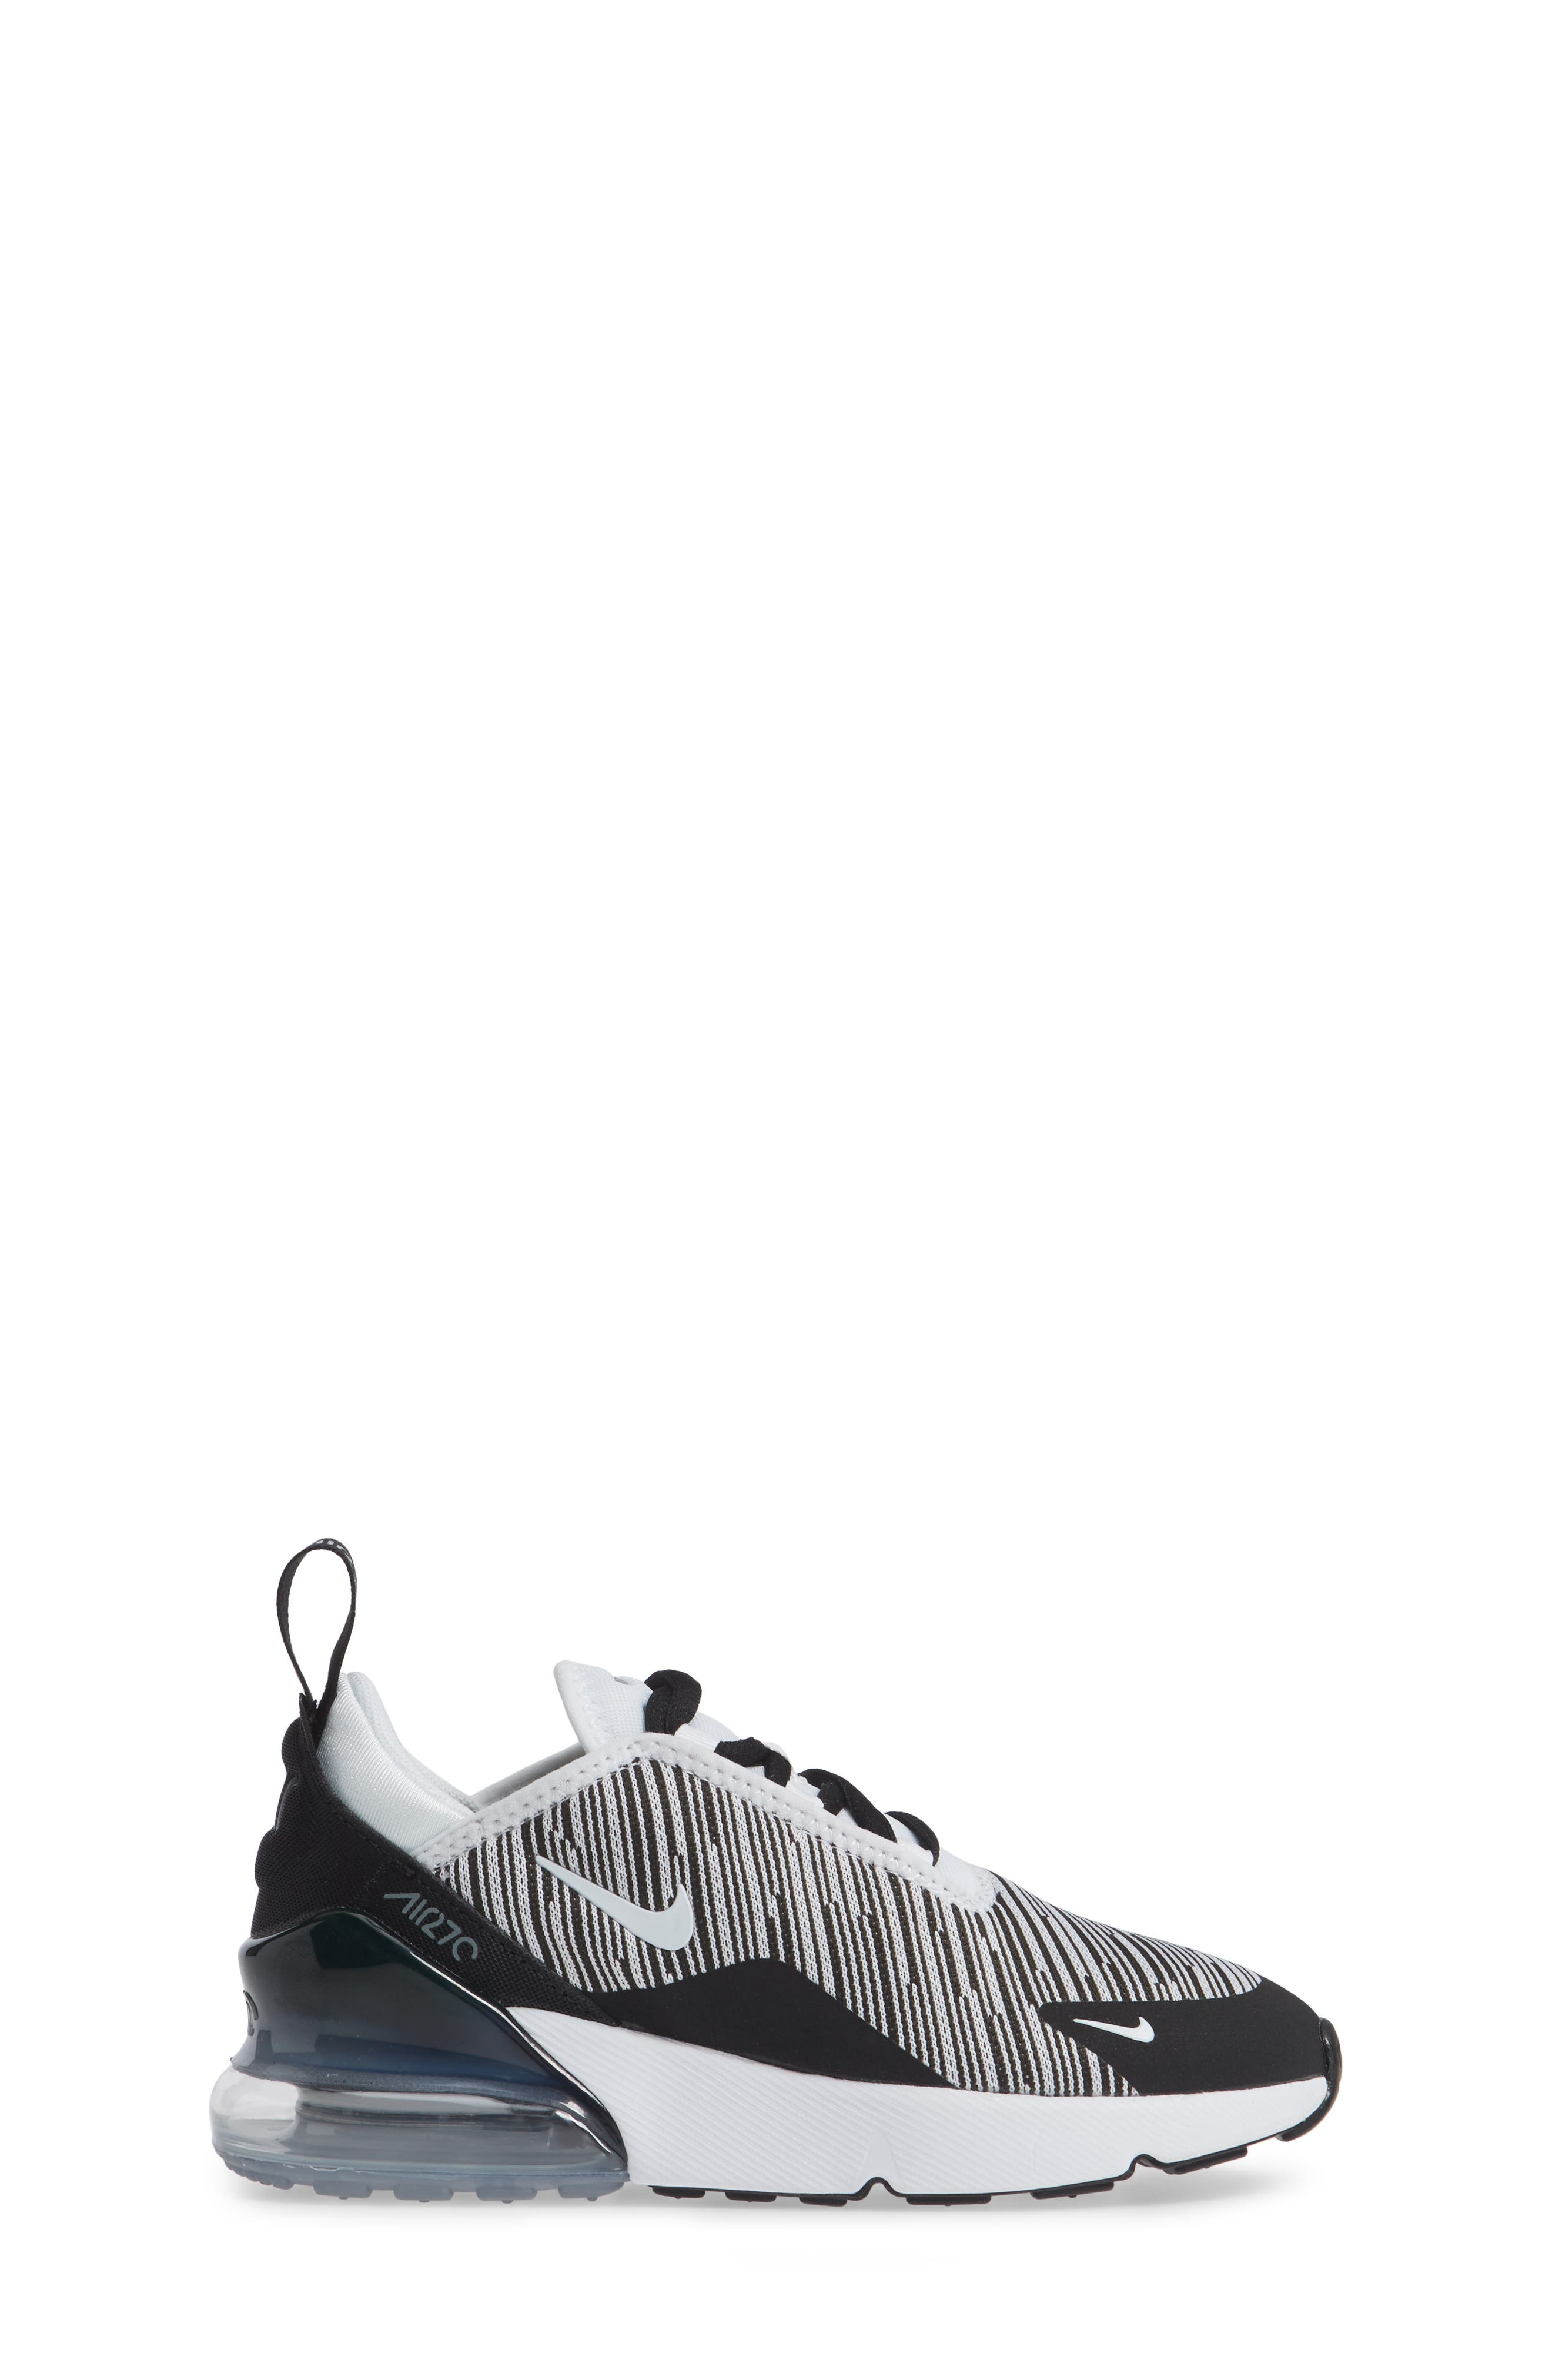 Air Max 270 Sneaker,                             Alternate thumbnail 4, color,                             Black/ White/ Grey/ Silver